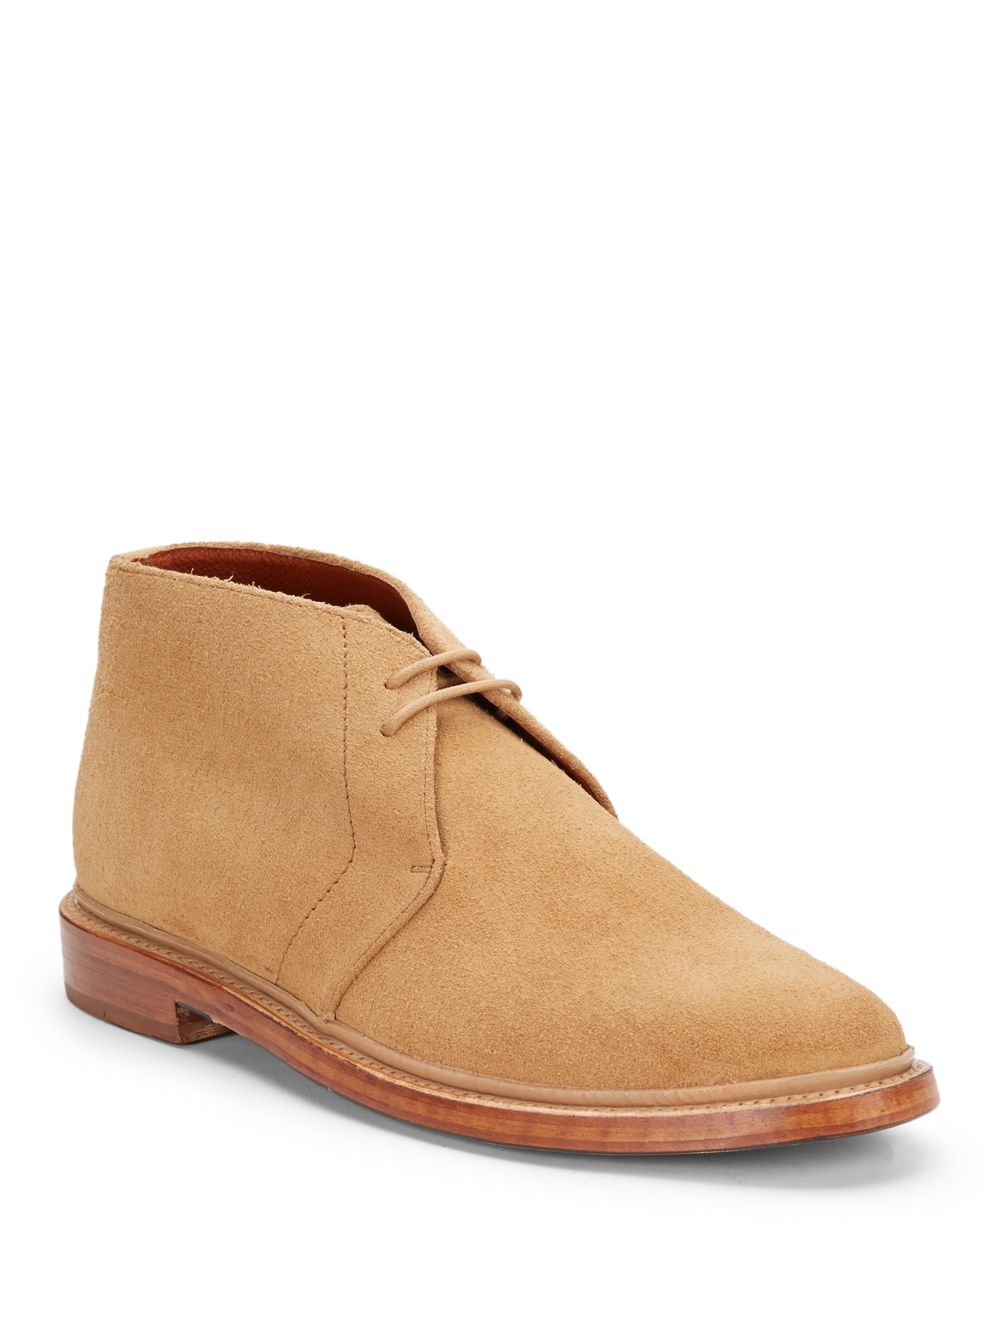 florsheim by duckie brown suede chukka ankle boots in